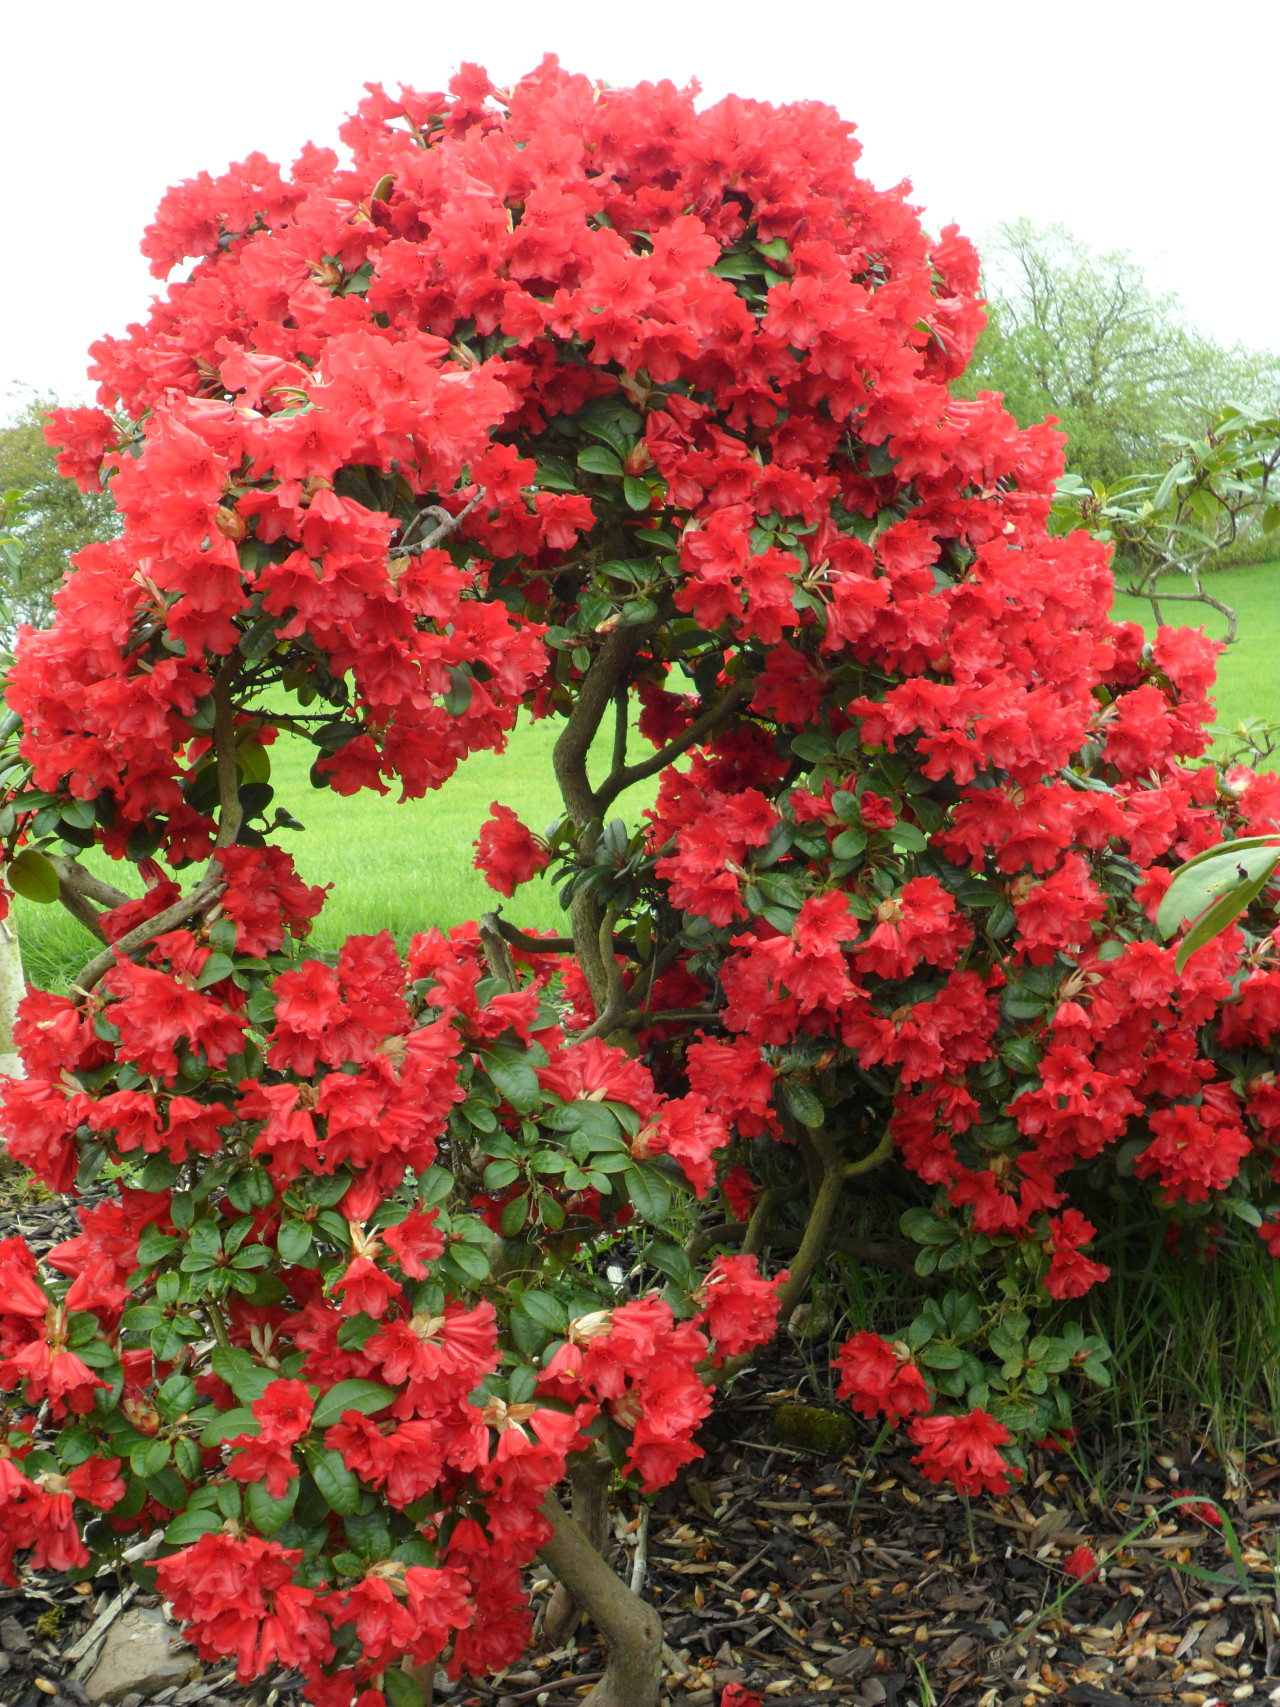 vwcampervan-aldridge:  Bright Red Azalea, Long Birch , Staffordshire, England  All Original Photography by http://vwcampervan-aldridge.tumblr.com  These remind me of the Flamboyan in PuertoRico.